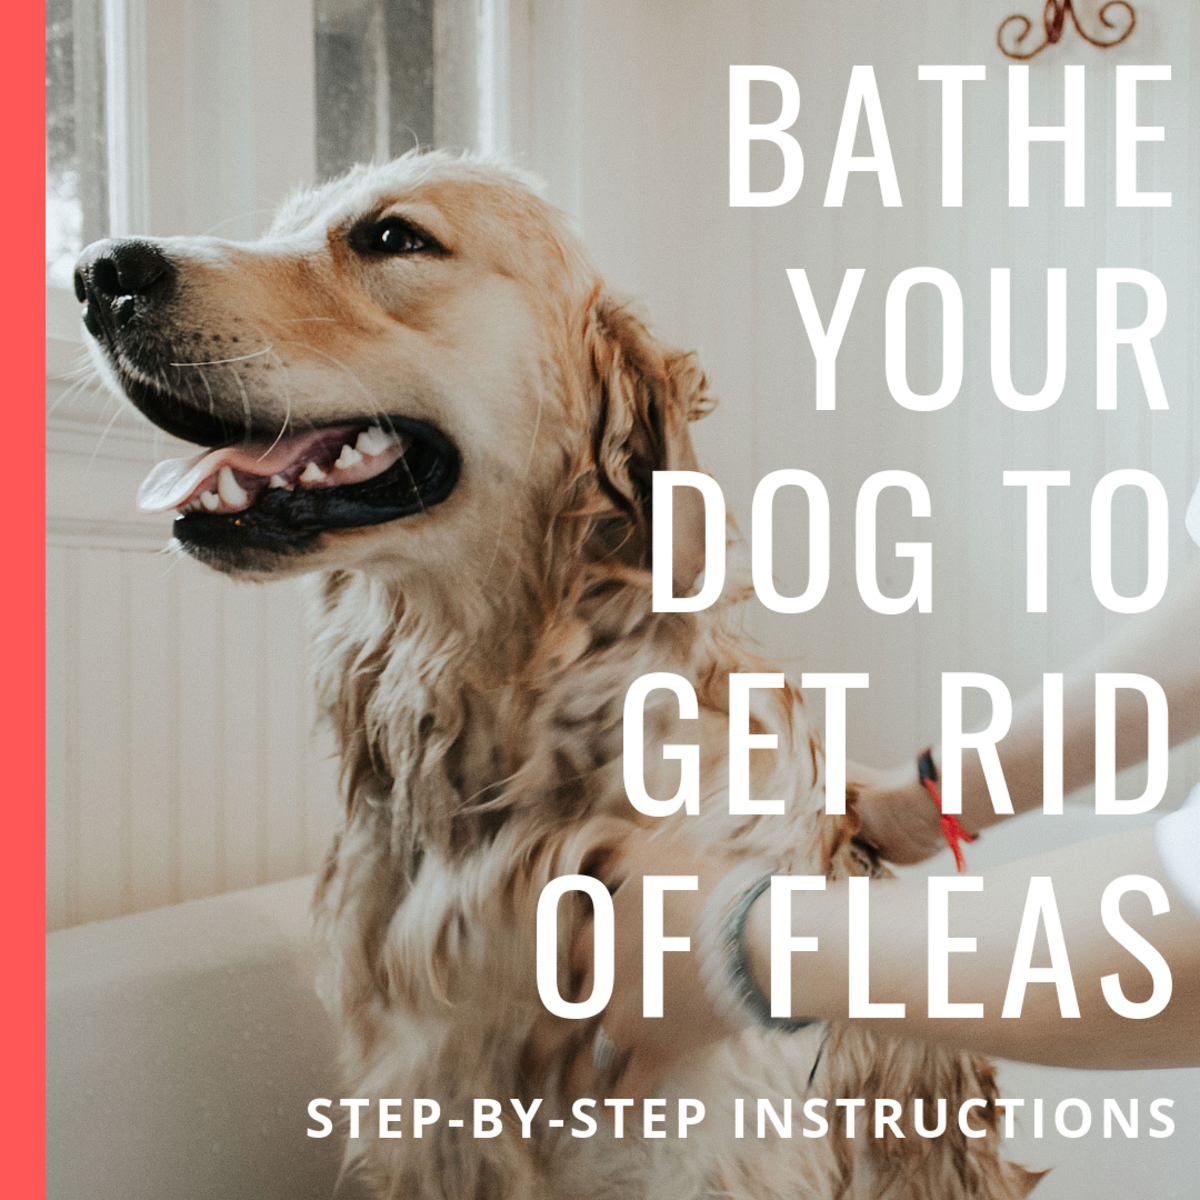 How to Get Rid of Dog Fleas Using a Bath and Soap